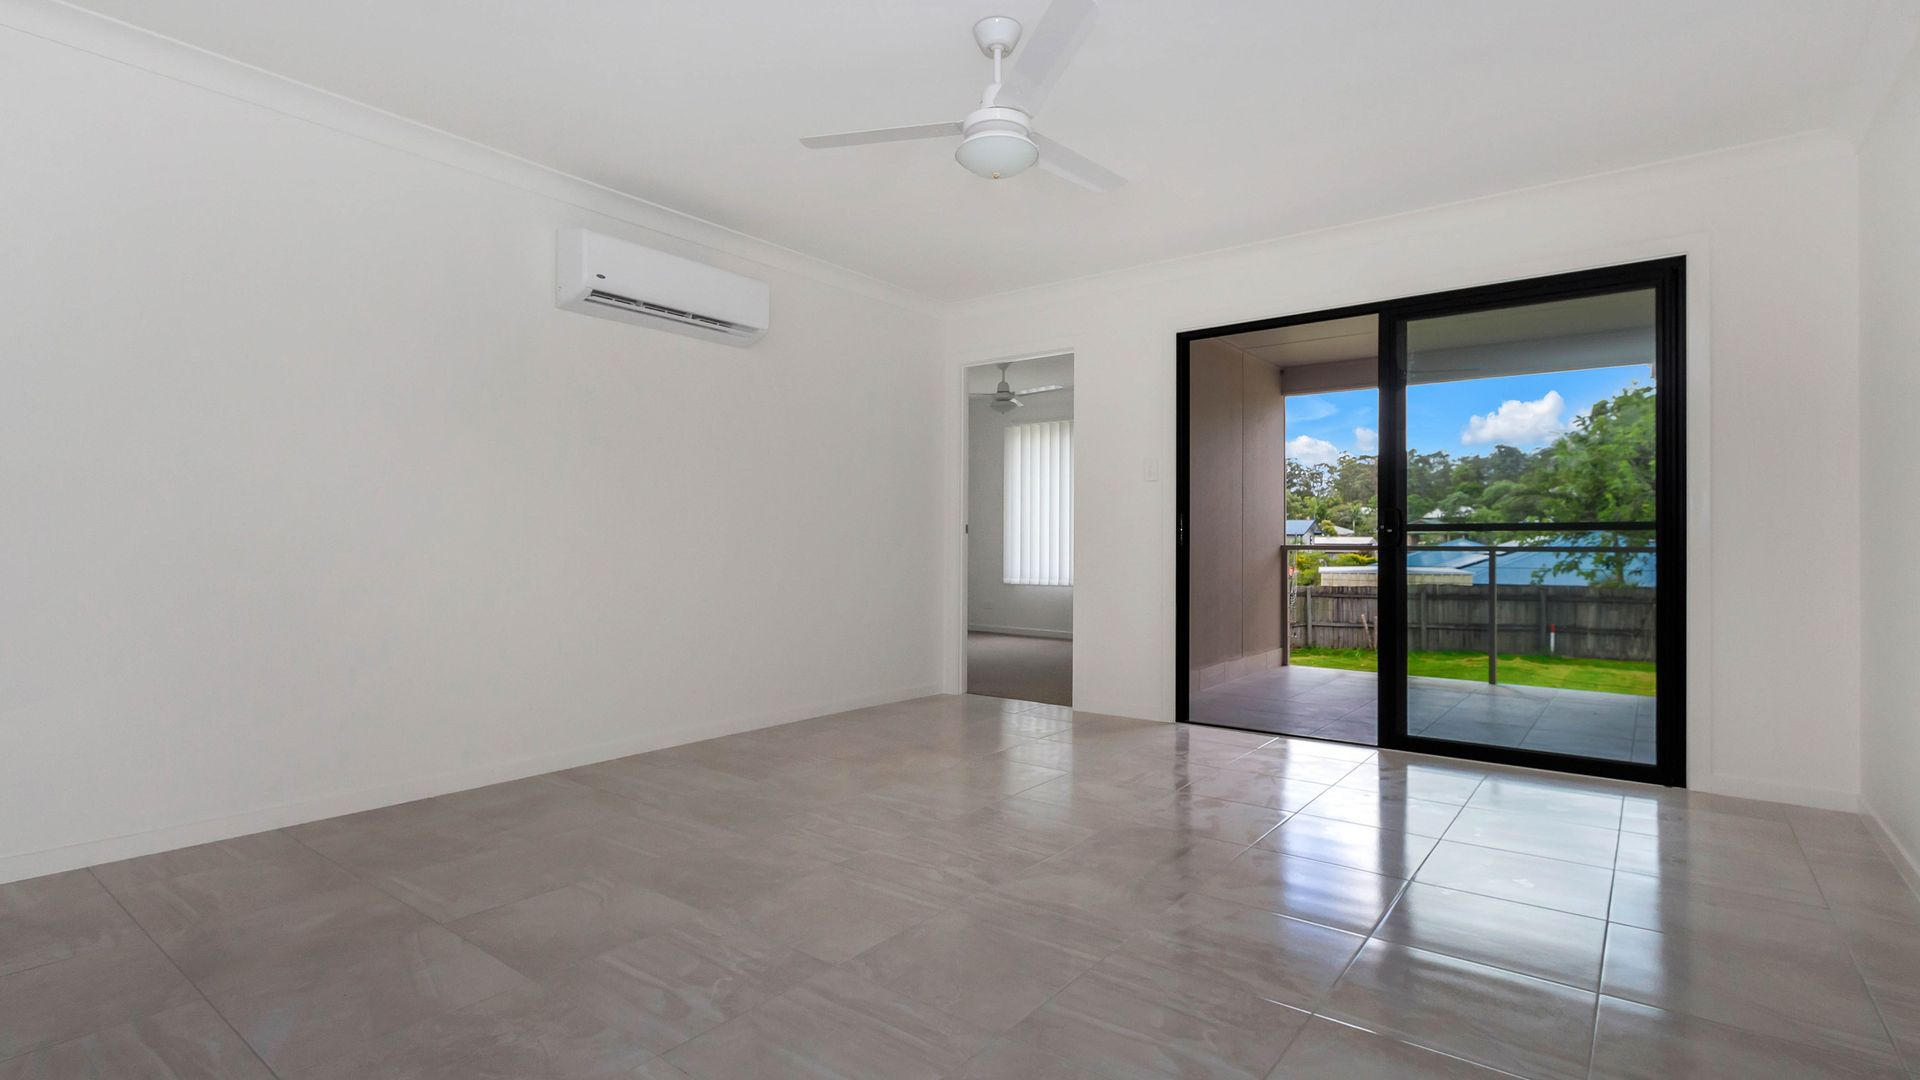 1/13 Buckley Street, Landsborough QLD 4550, Image 5